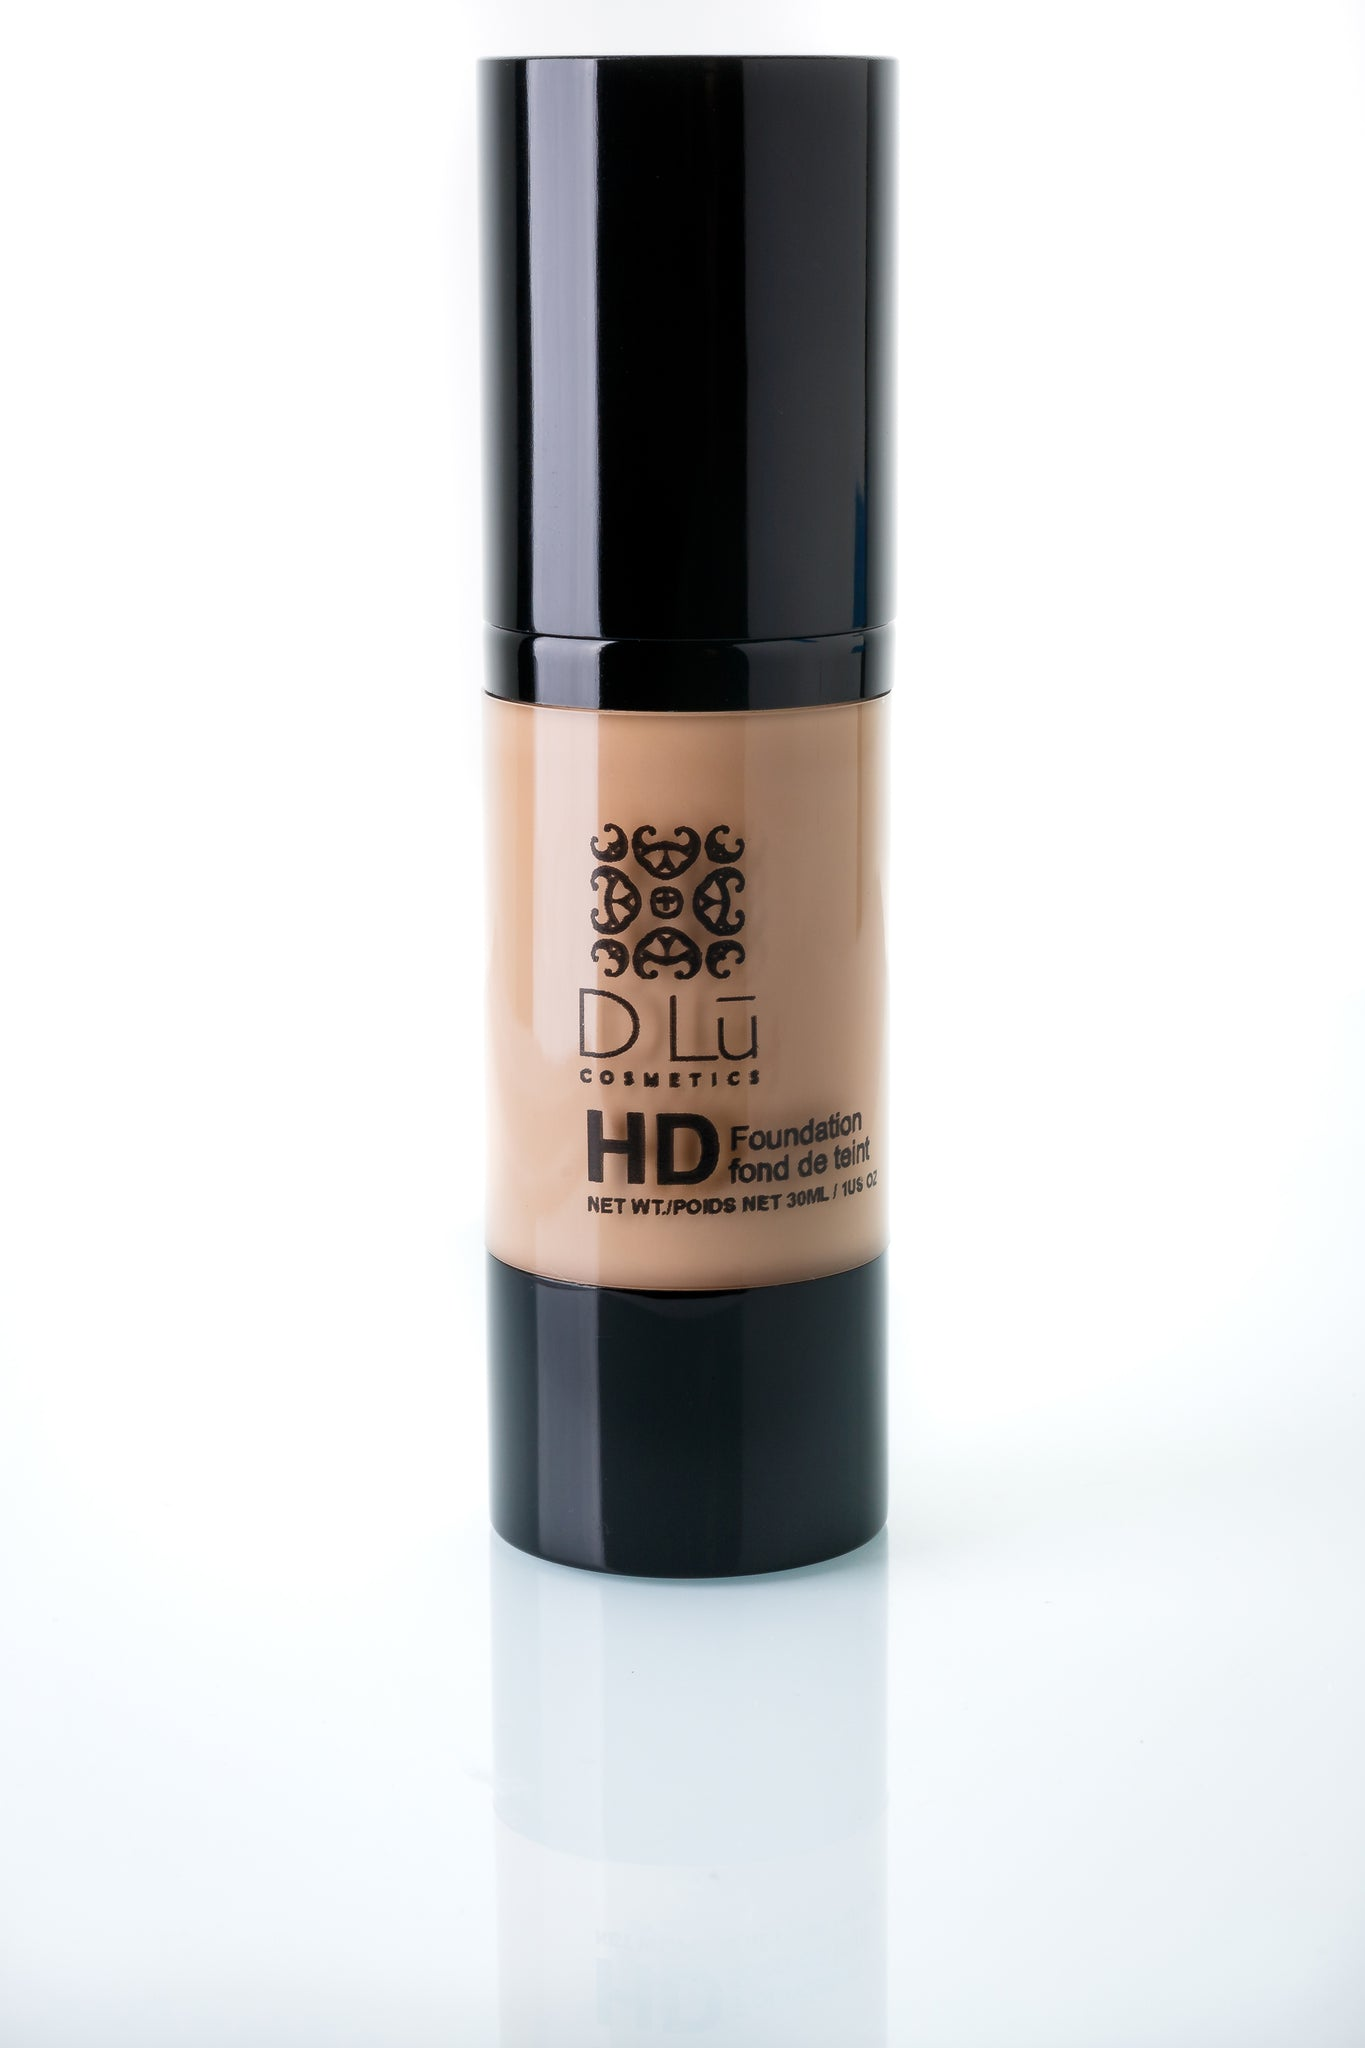 DLu Premier HD Liquid Foundation Ivory